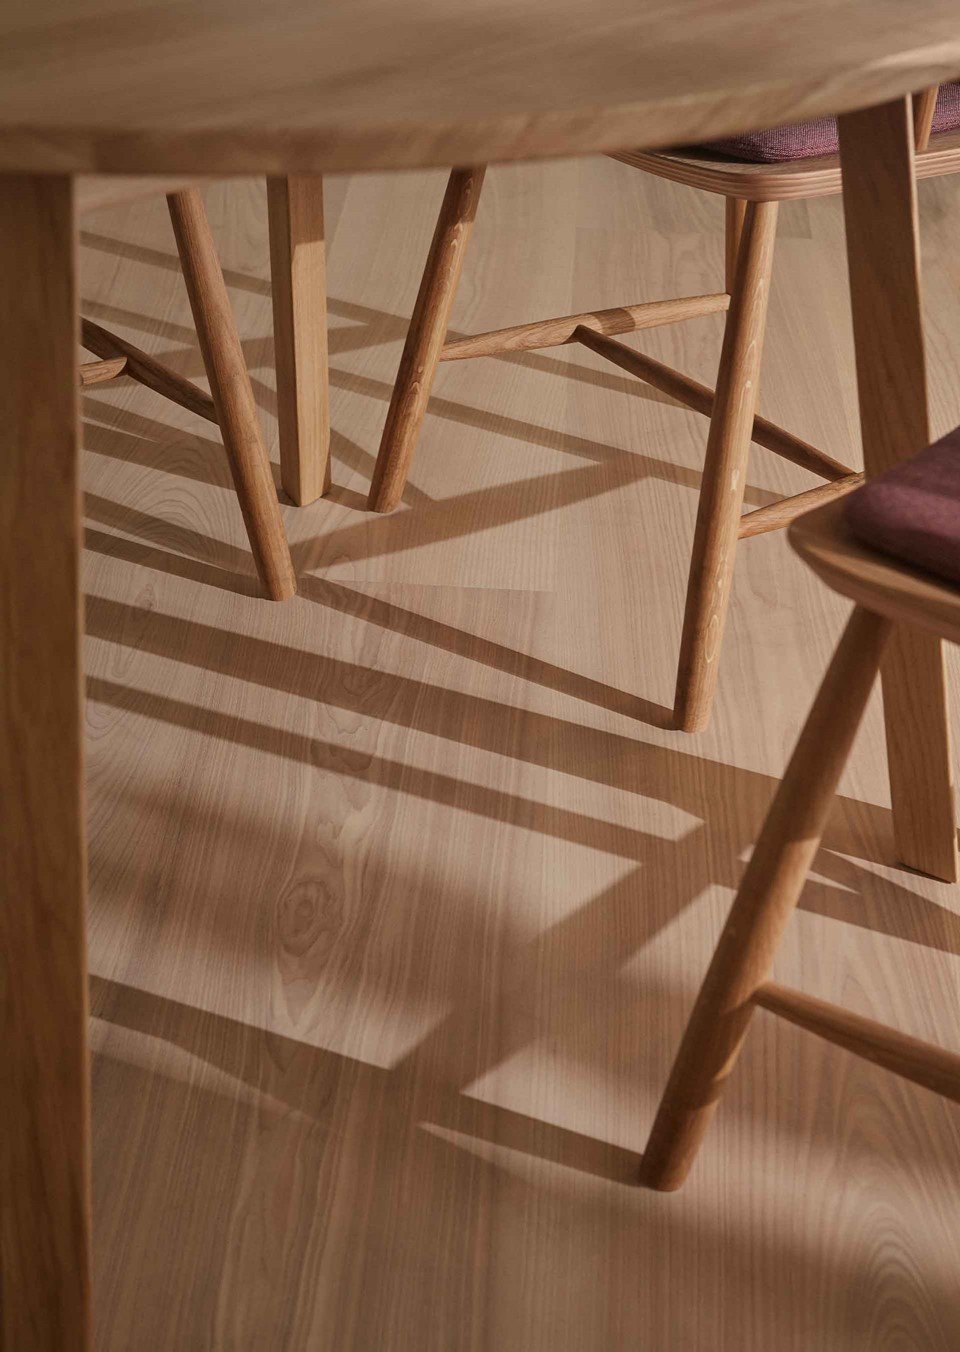 ash-floor-close-up_light-oil_aros-orangeri_aarhus_dinesen.jpg